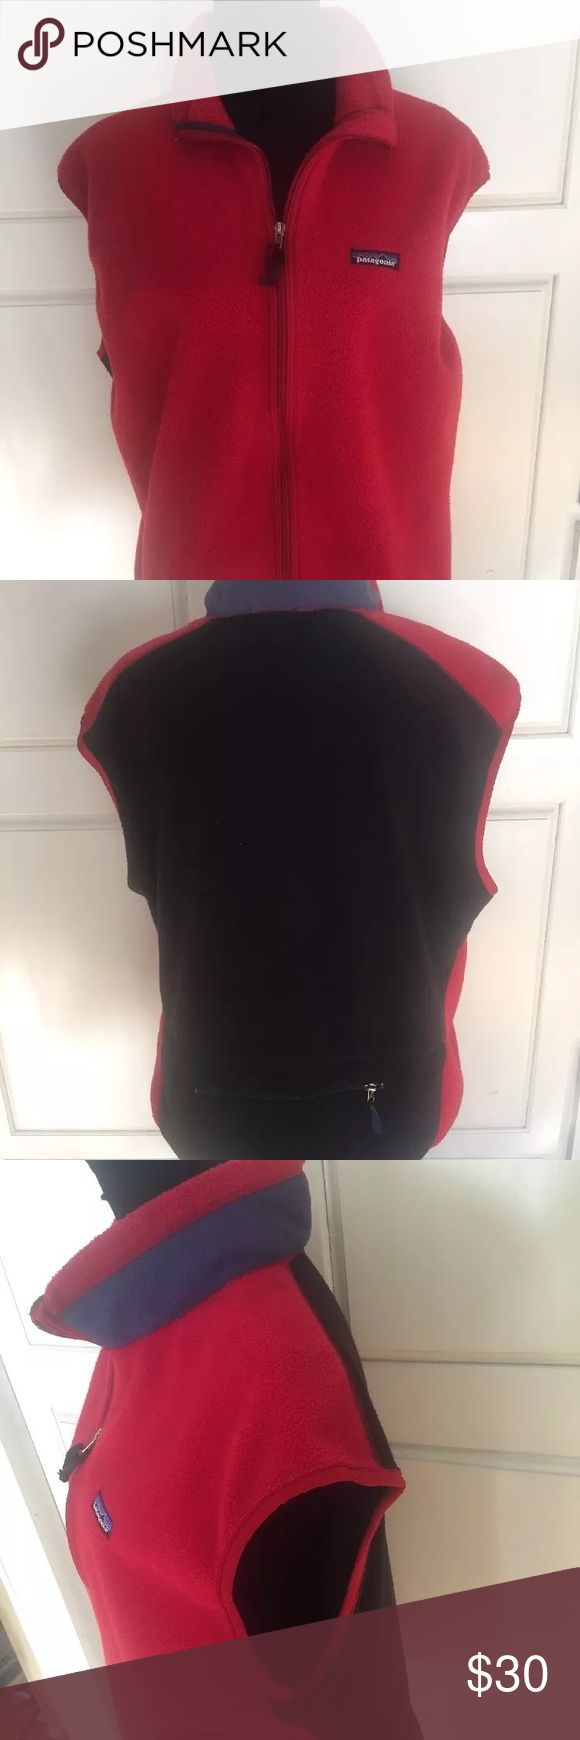 Men's Patagonia fleece vest awesome condition Perfect condition Patagonia fleece vest.  Back zipper pocket, fully lined, so toasty warm!  Patagonia quality and style speaks volumes.  Will last for a lifetime. Patagonia Jackets & Coats Vests